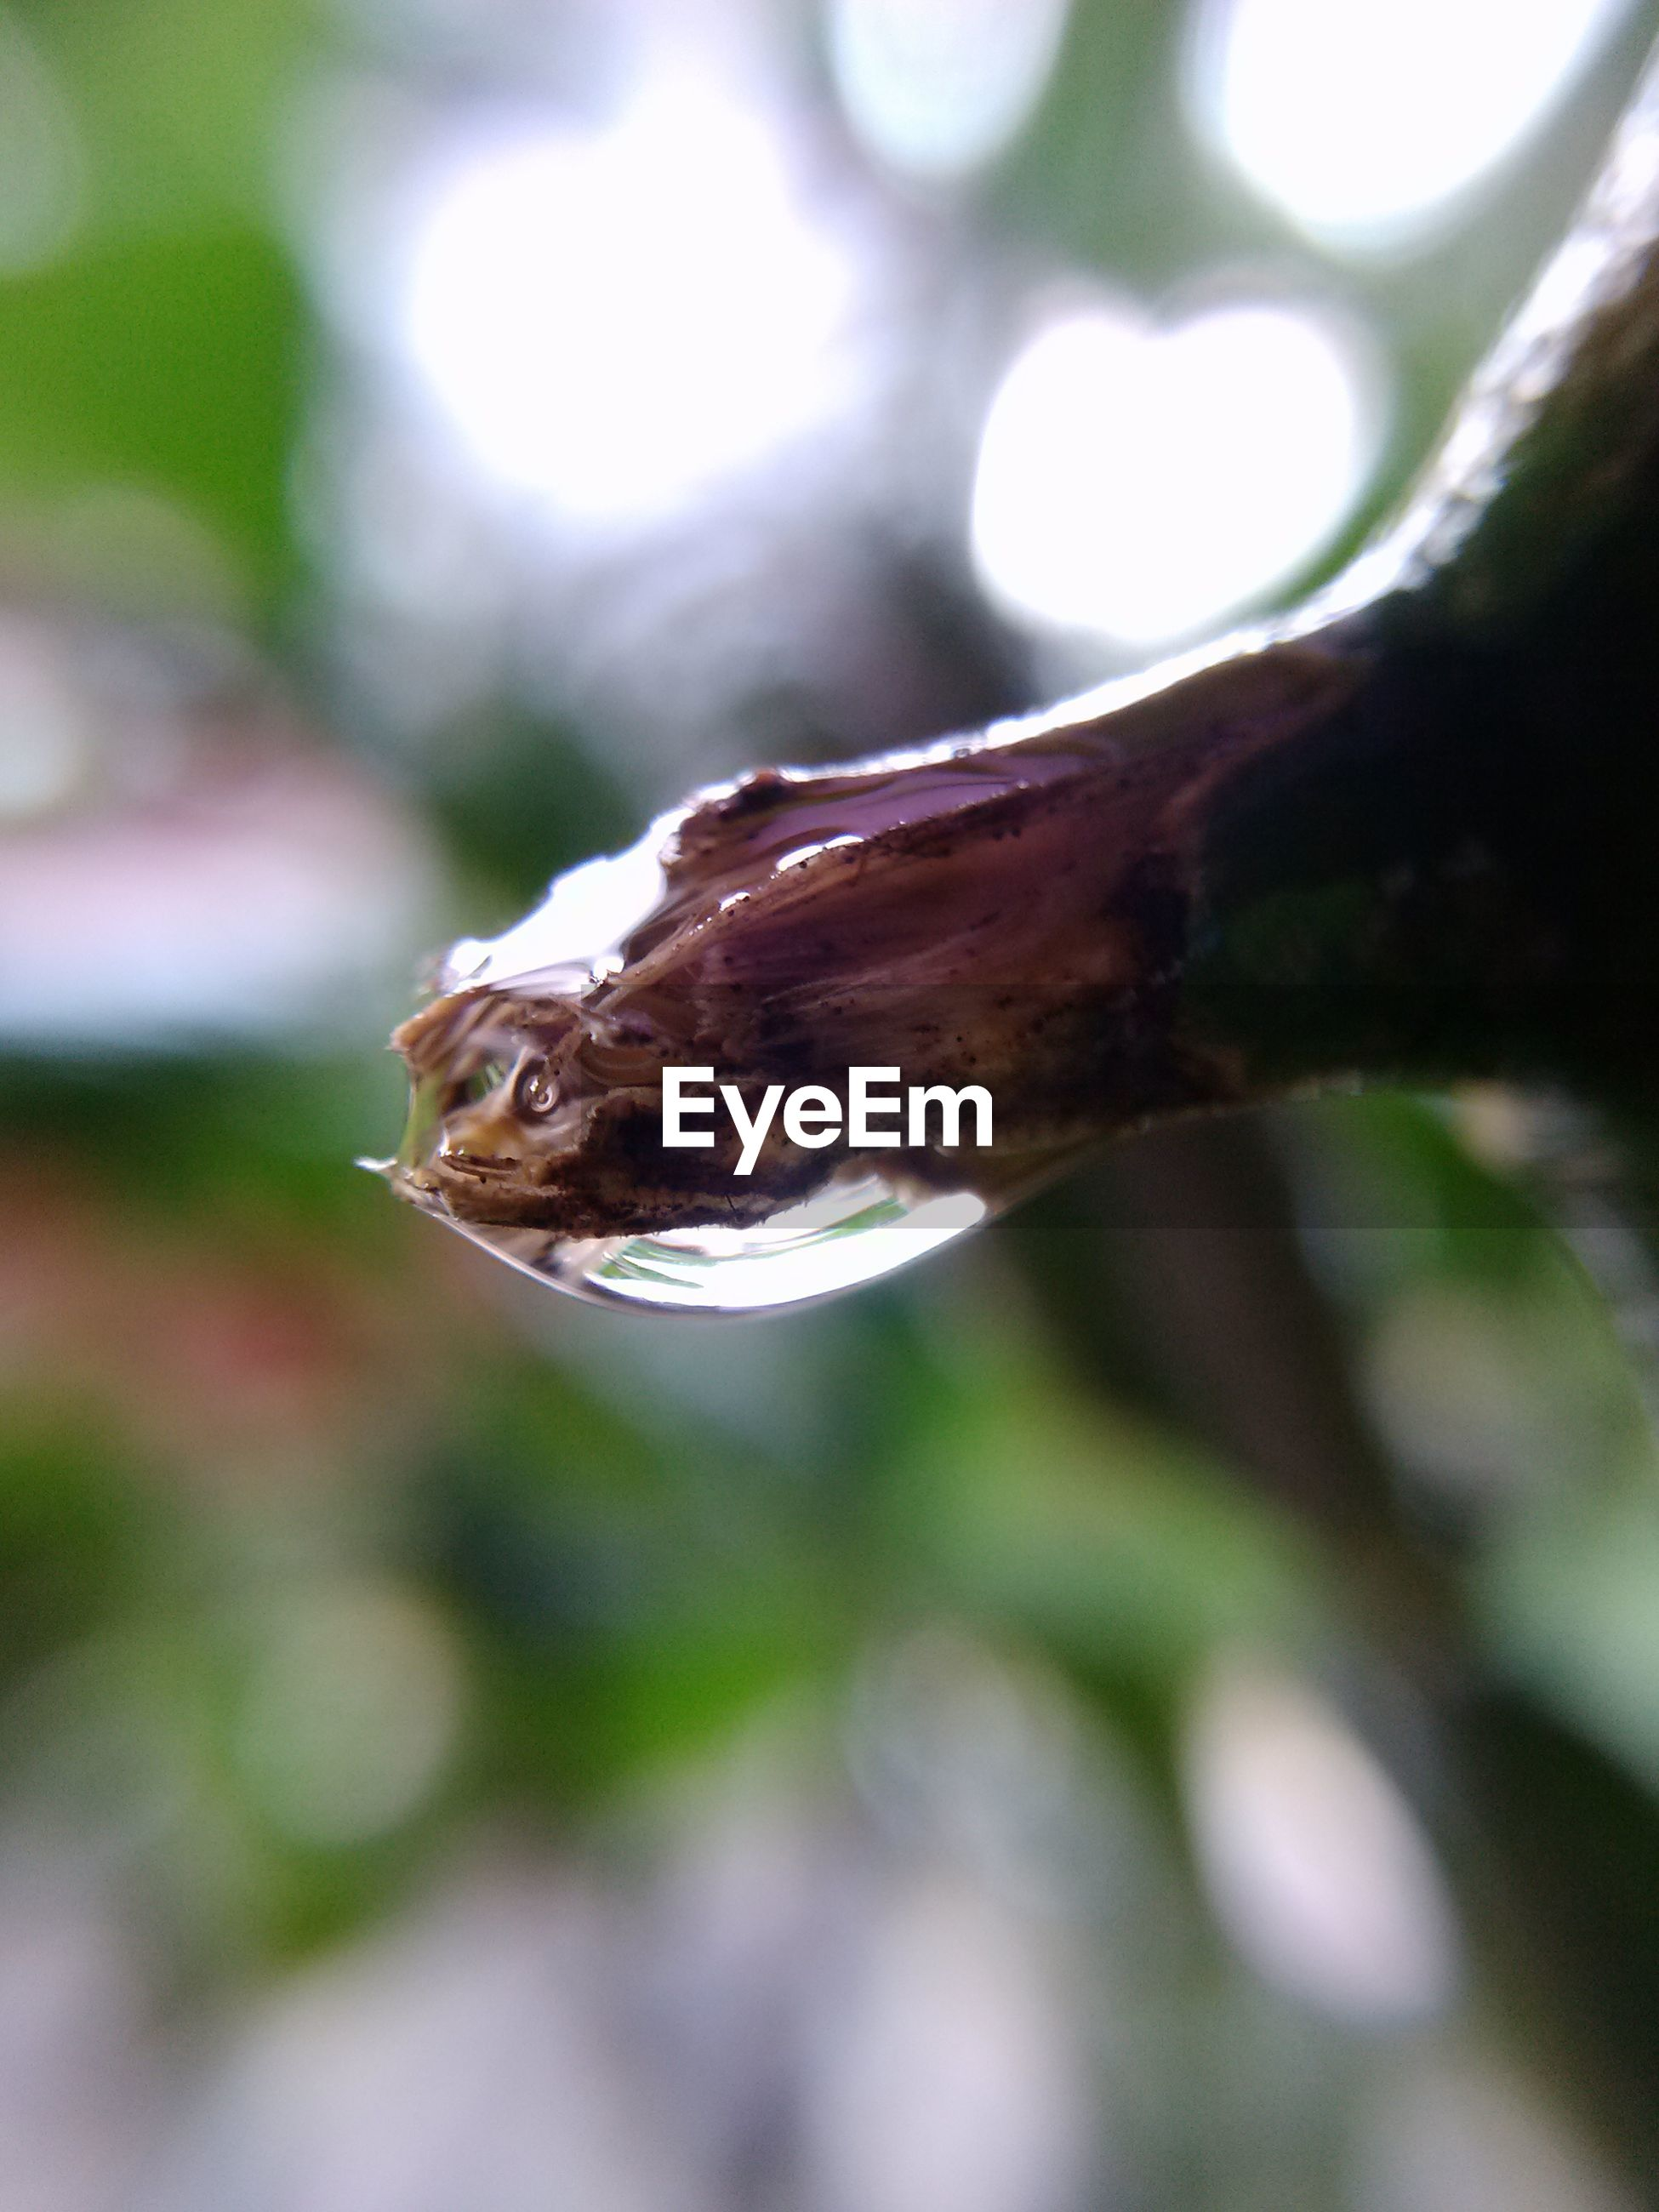 focus on foreground, close-up, selective focus, leaf, nature, dry, day, outdoors, natural pattern, forest, no people, tree, wood - material, brown, branch, leaf vein, tree trunk, growth, fragility, sunlight